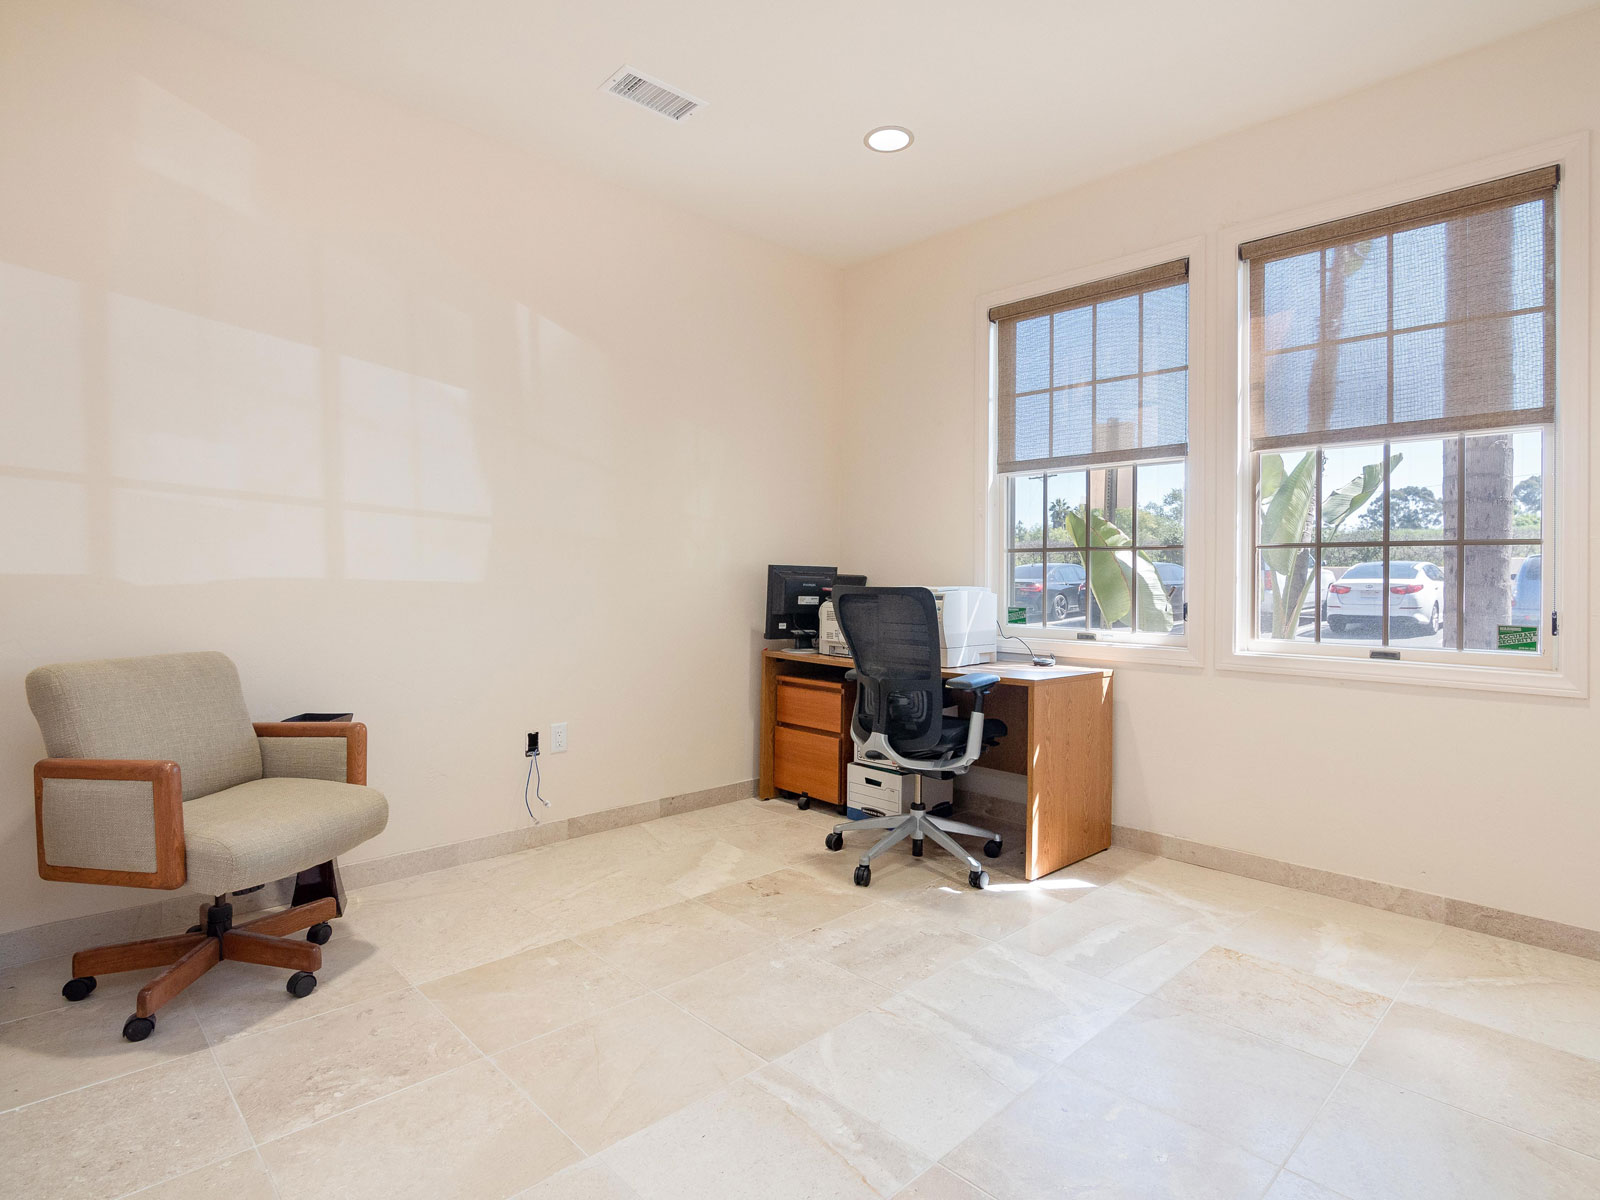 316-s-melrose-vista-ca-executive-suite-for-lease-1002